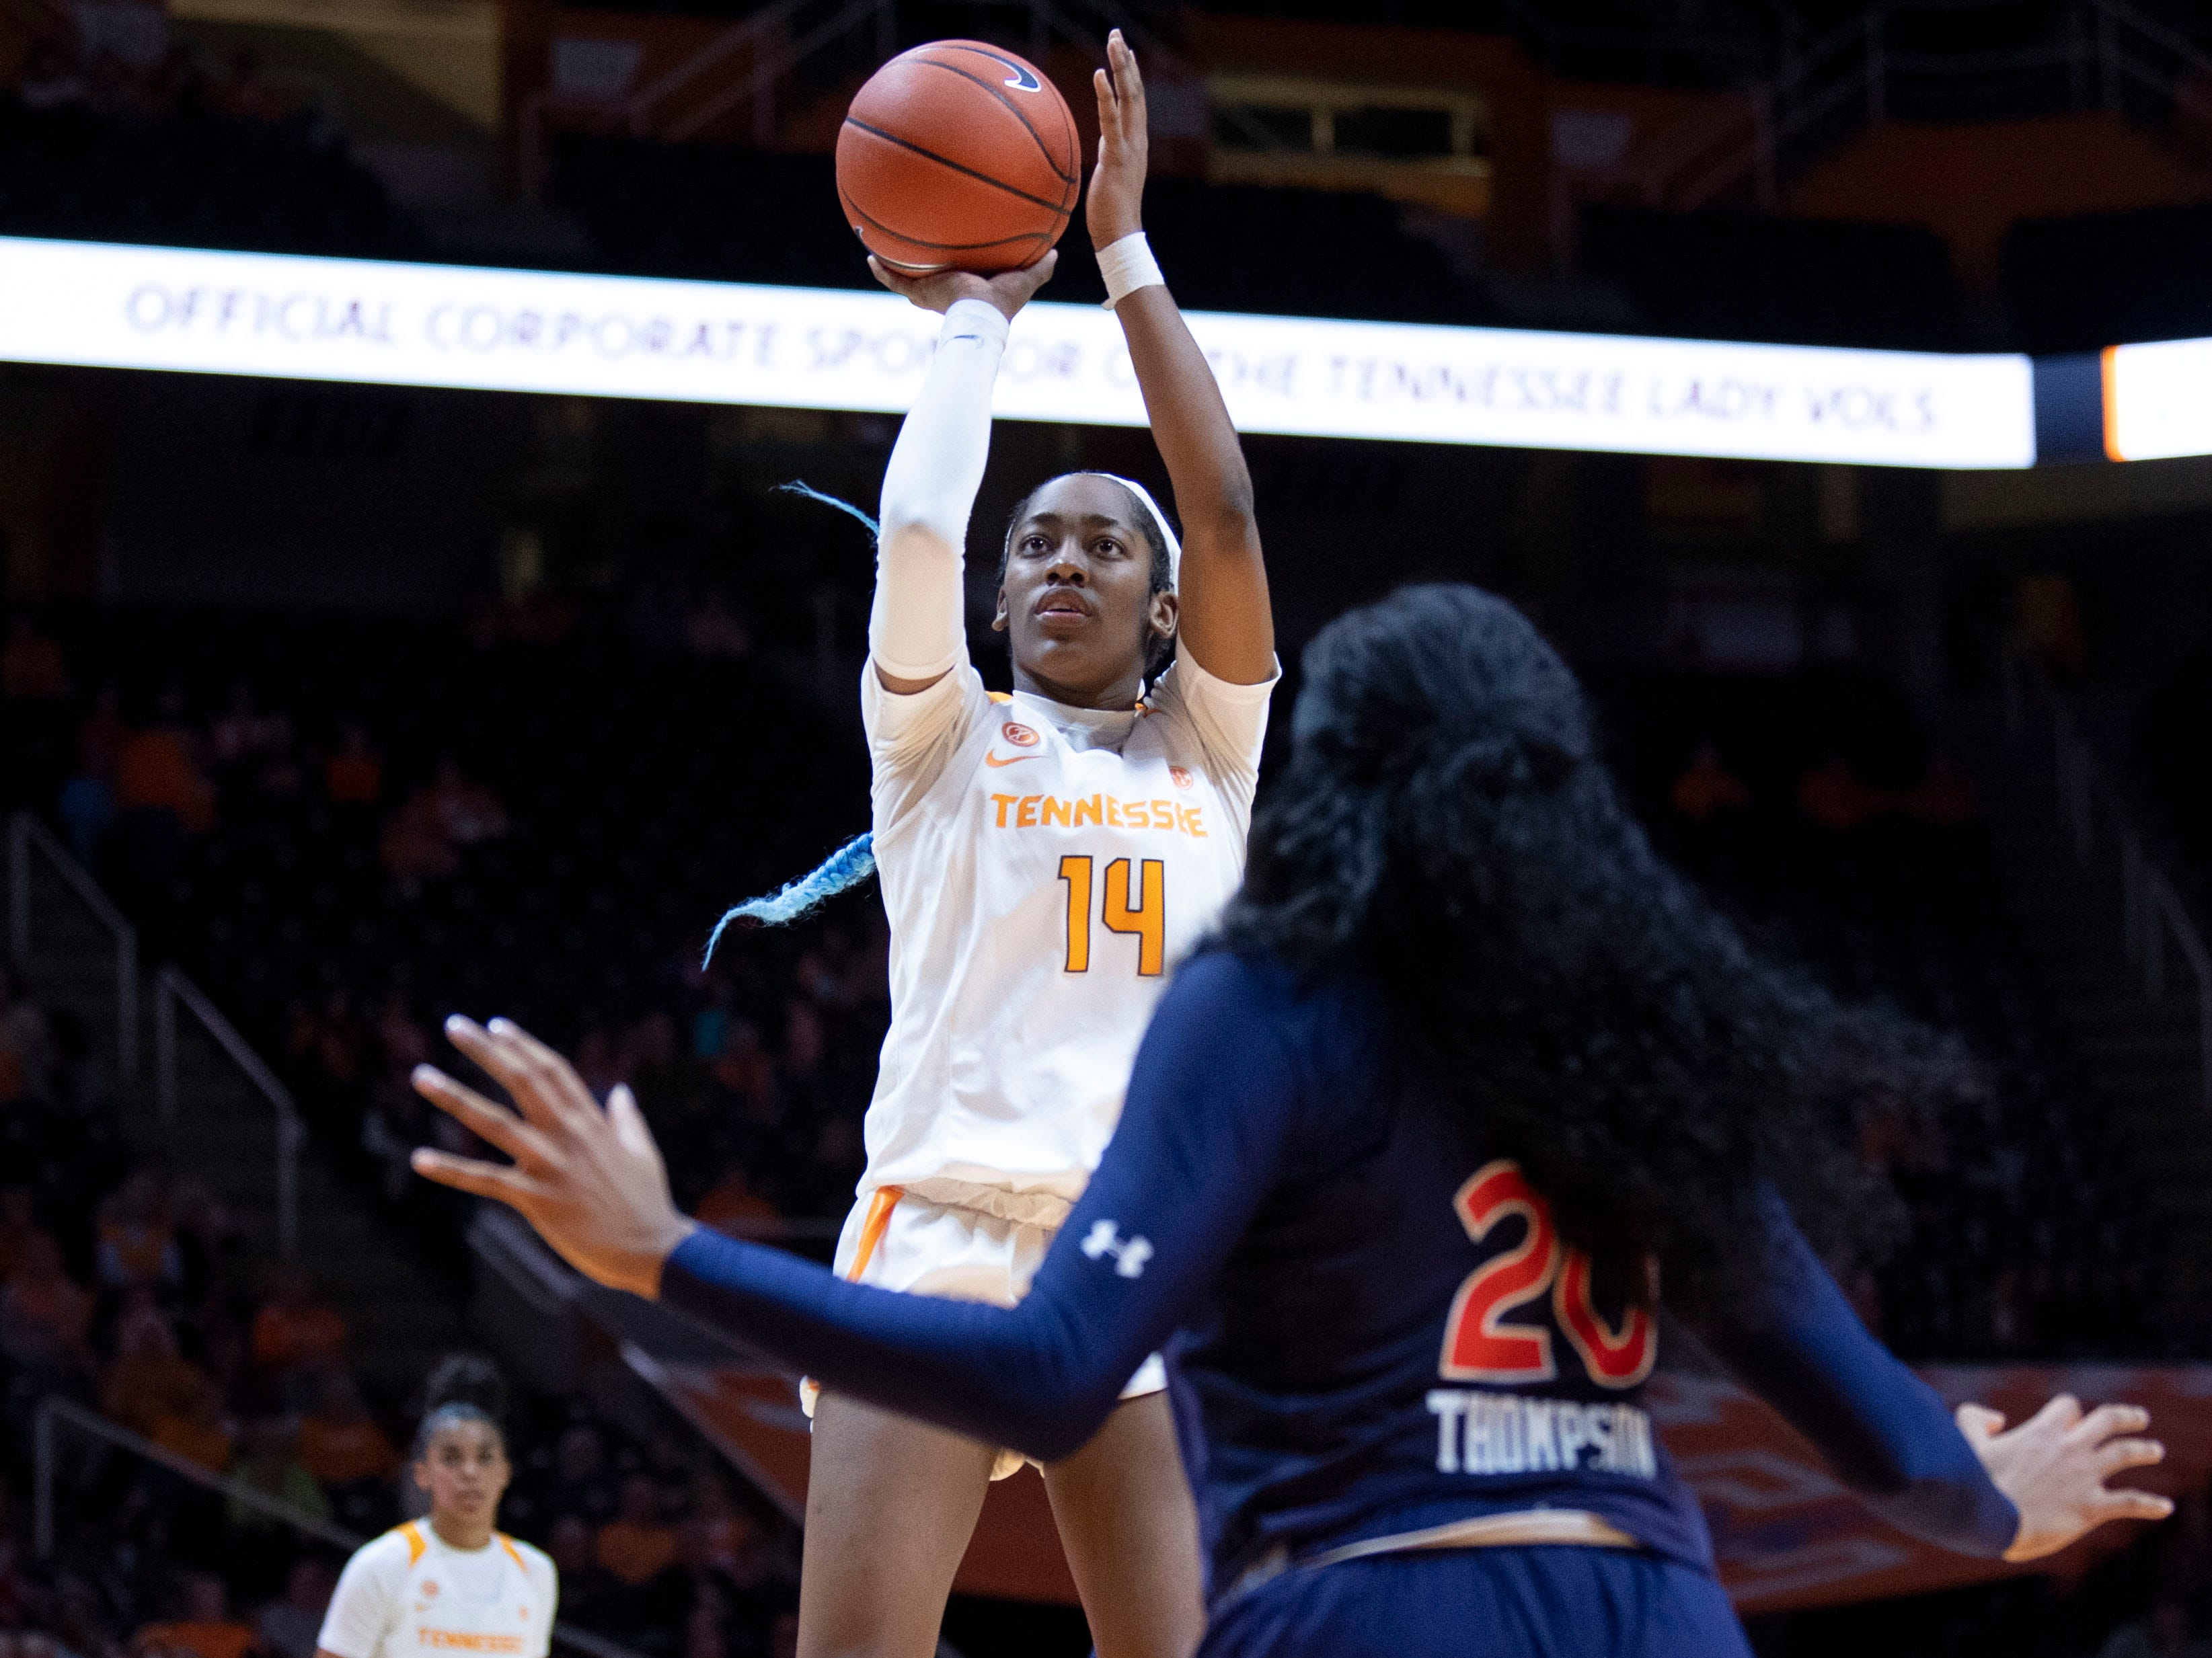 Tennessee's Zaay Green (14) with a jump shot over Auburn's Unique Thompson (20) on Thursday, February 14, 2019.